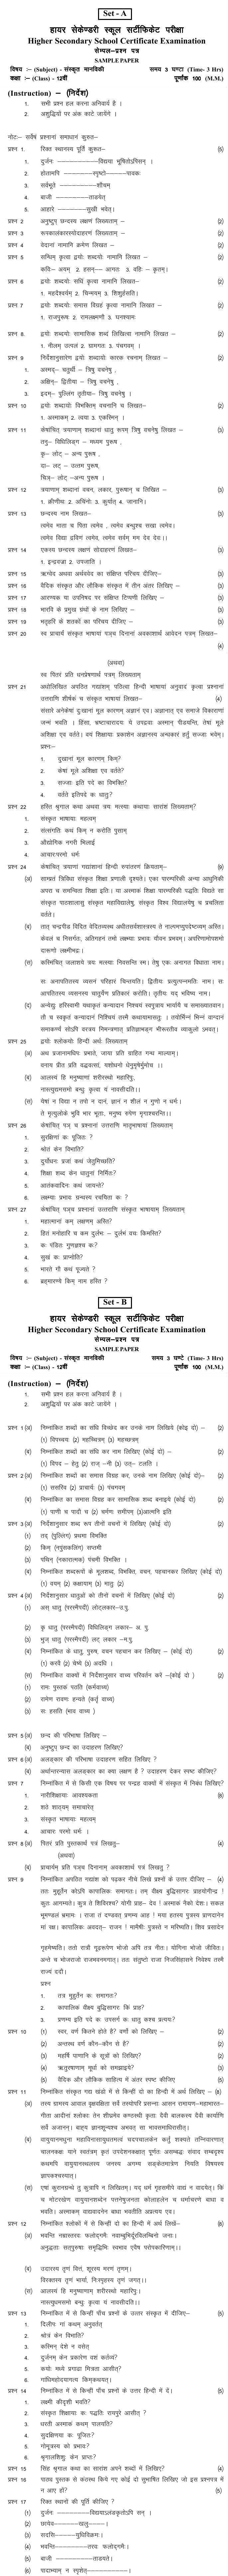 Chattisgarh Board Class 12 Sanskrit (Manviki) Sample Paper